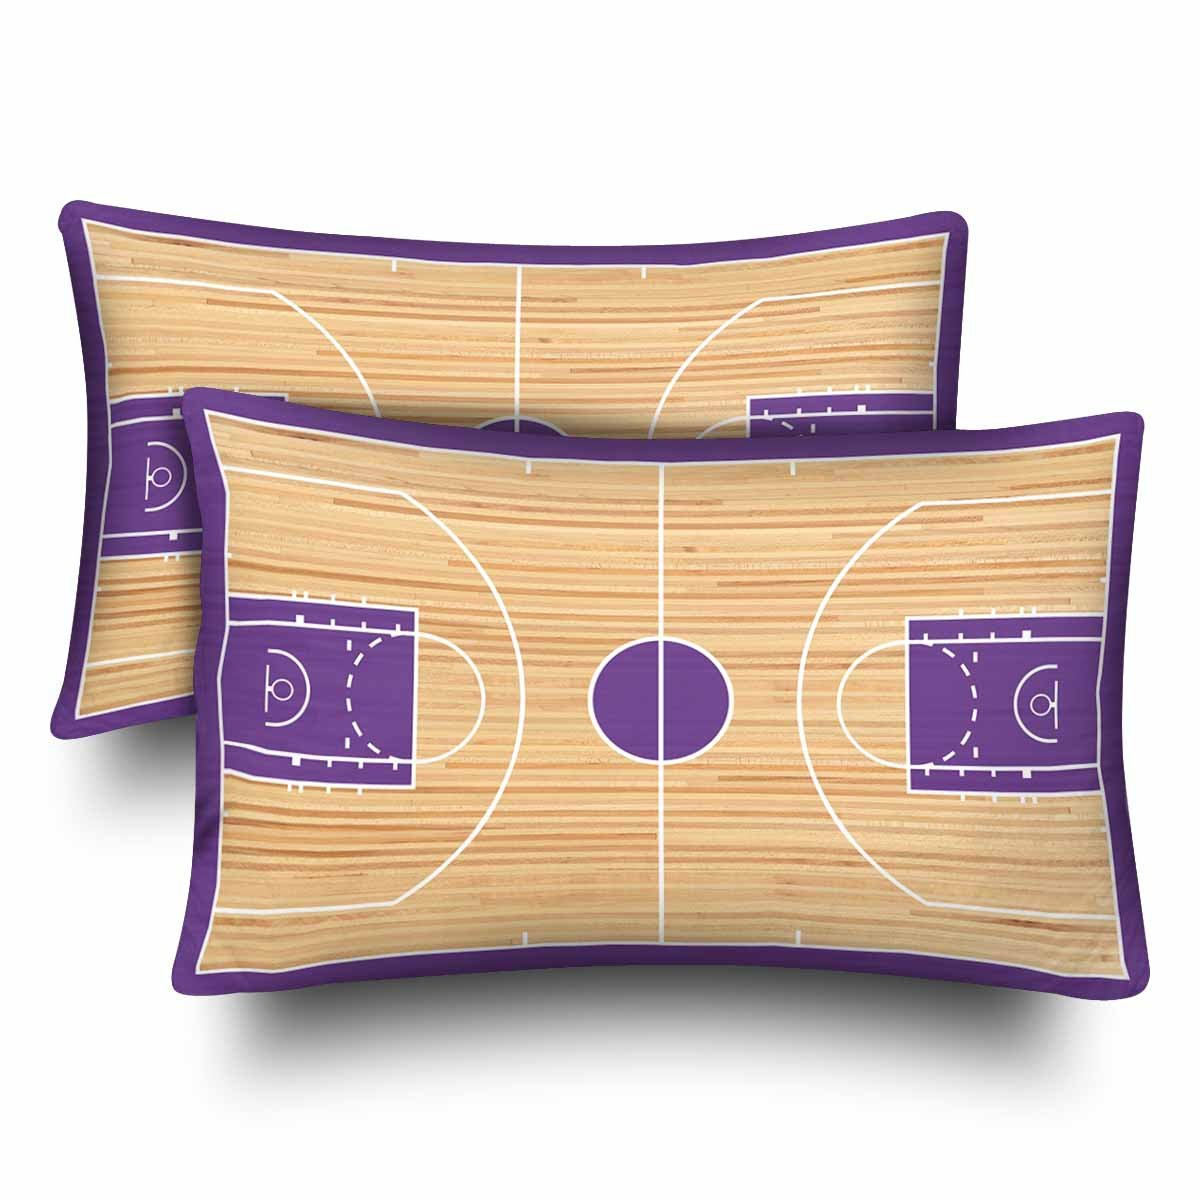 InterestPrint Sports Basketball Court Children Kids Playtime Purple Wood Pillow Cases Pillowcase Standard Size 20x30 Set of 2, Rectangle Pillow Covers Protector for Home Couch Sofa Bedding Decorative